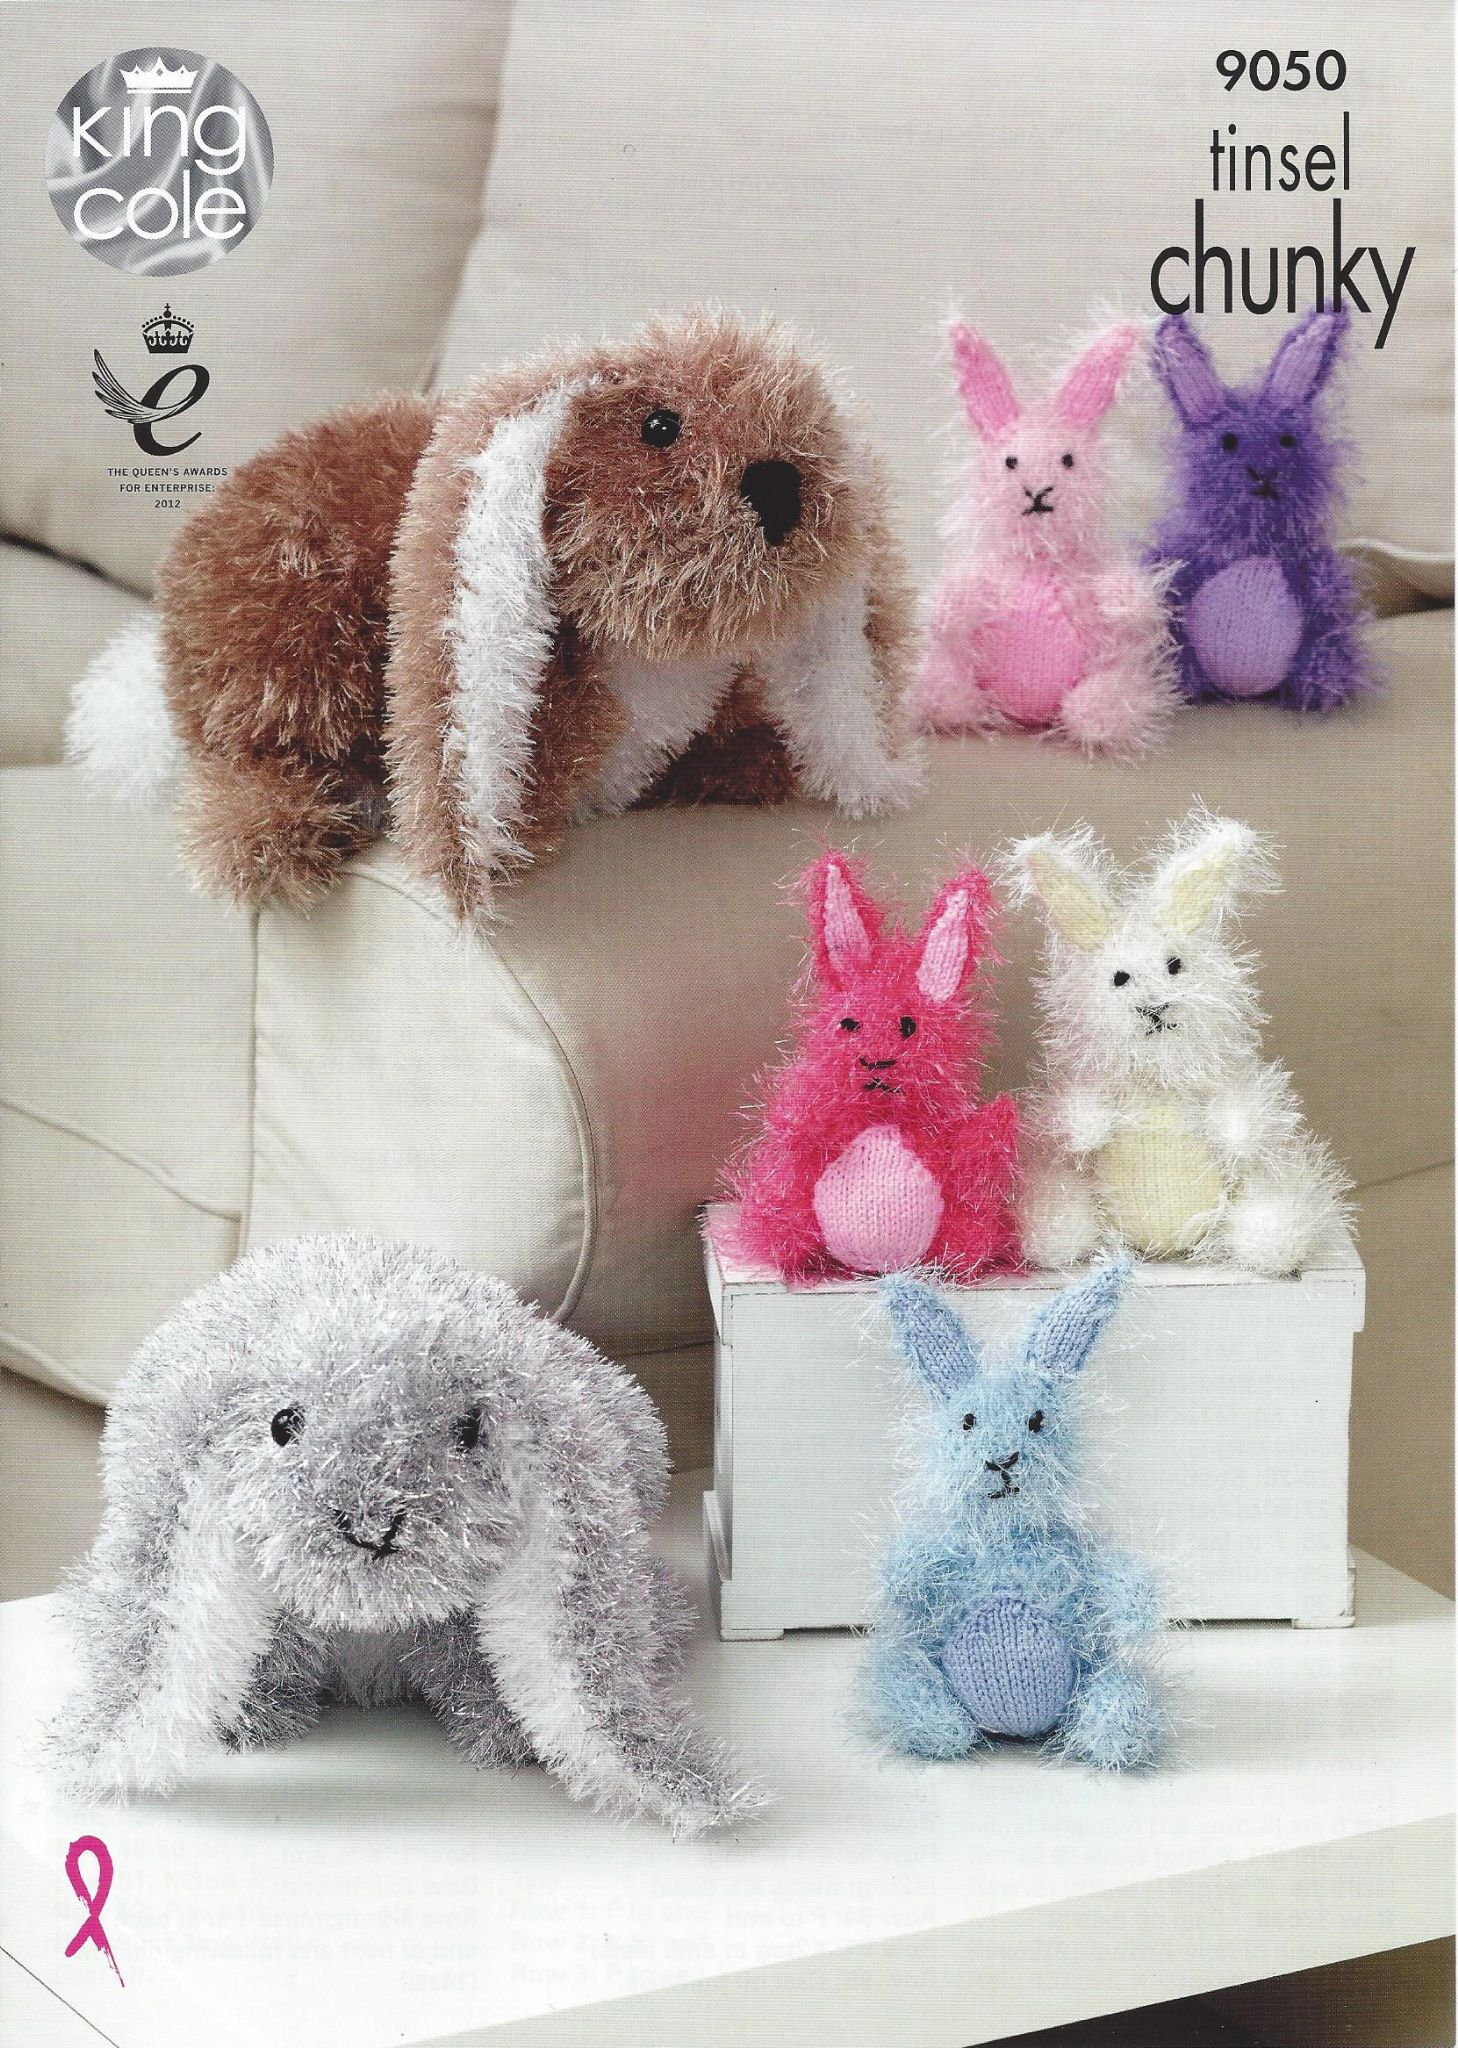 Knitting Patterns For King Cole Tinsel : King Cole Tinsel Chunky - 9050 Rabbits Knitting Pattern